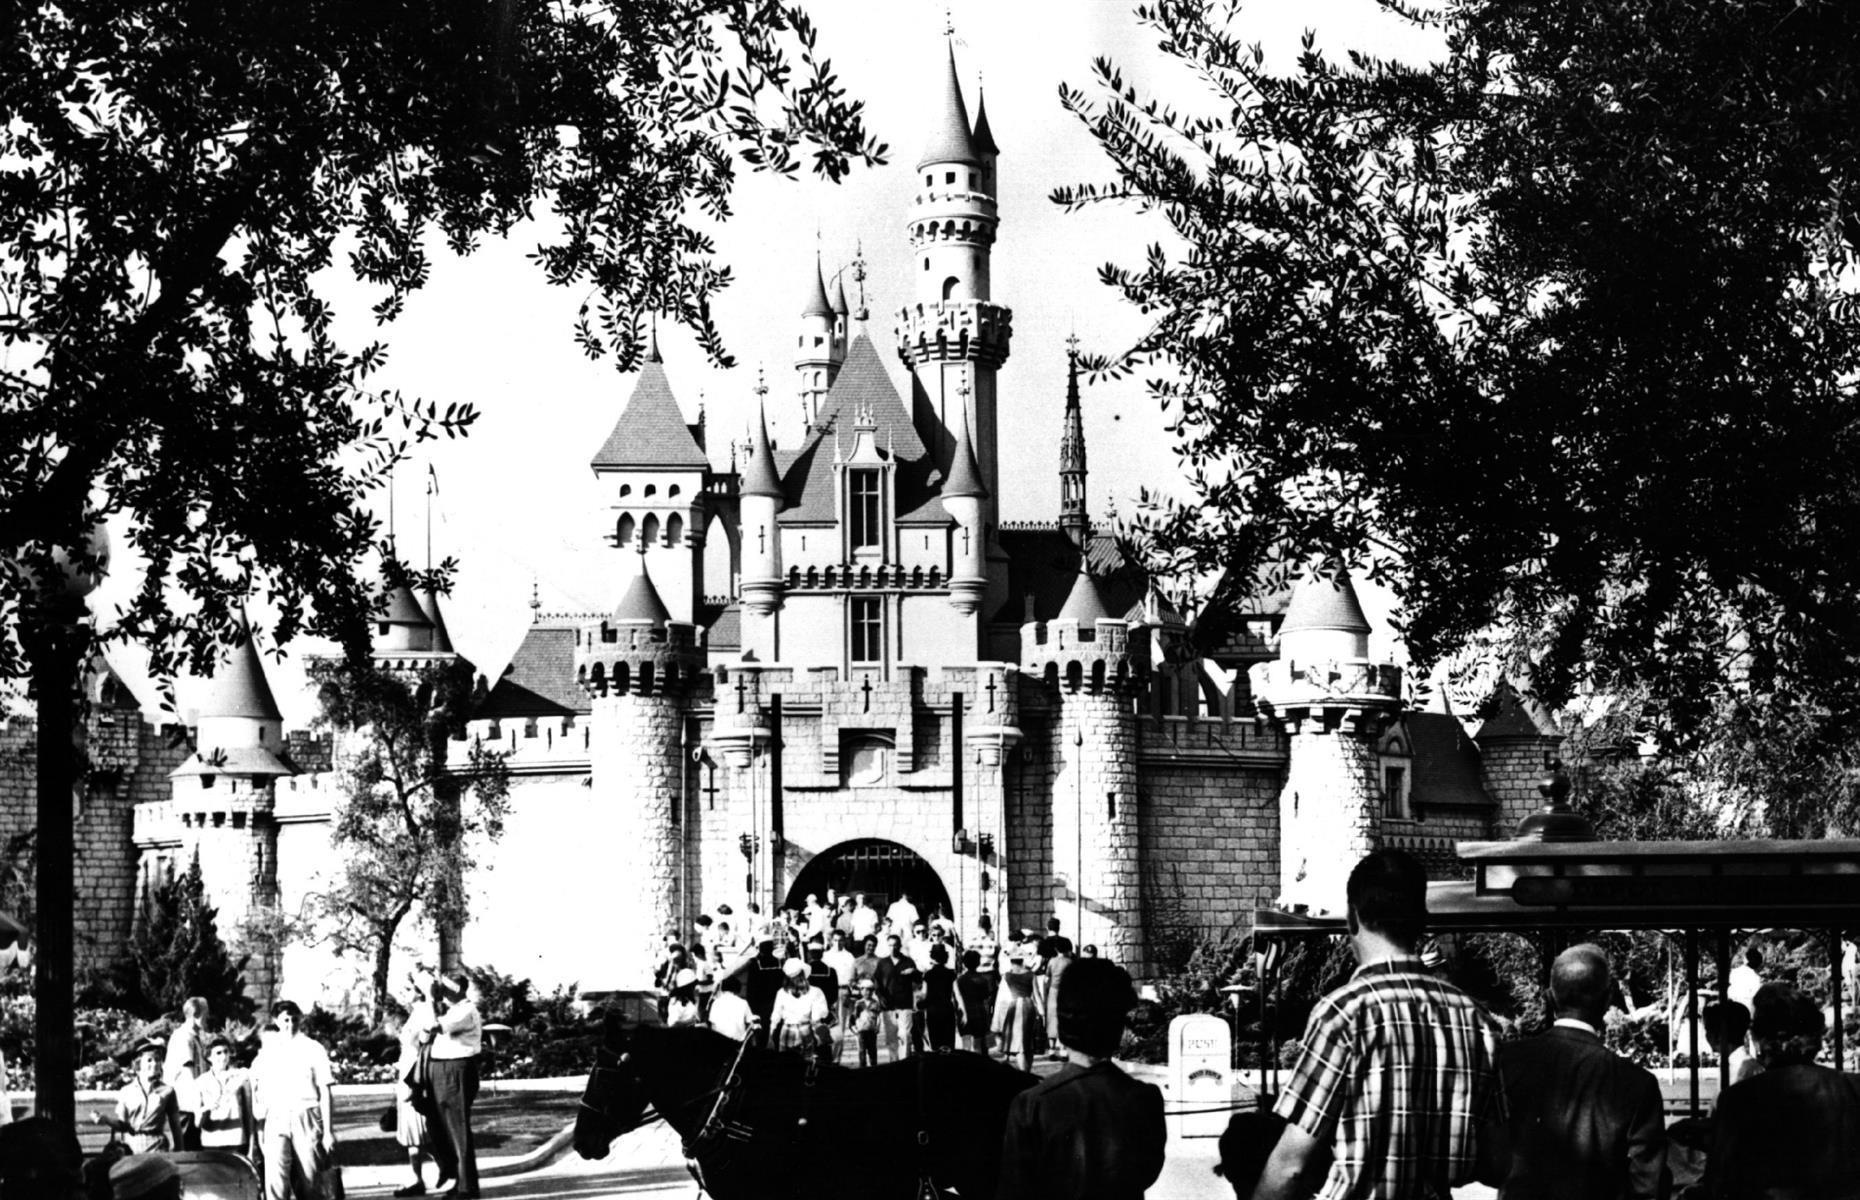 Slide 11 of 38: In 1955, tourism in the States would change forever, as Walt Disney opened the first Disney park in Anaheim, California. It soon became the yardstick by which all future theme parks would be measured, drawing visitors from all over. A trip to Disneyland was the dream vacationfor many families across the country and beyond. Now check out moreglorious vintage images of Disney's magical parks.